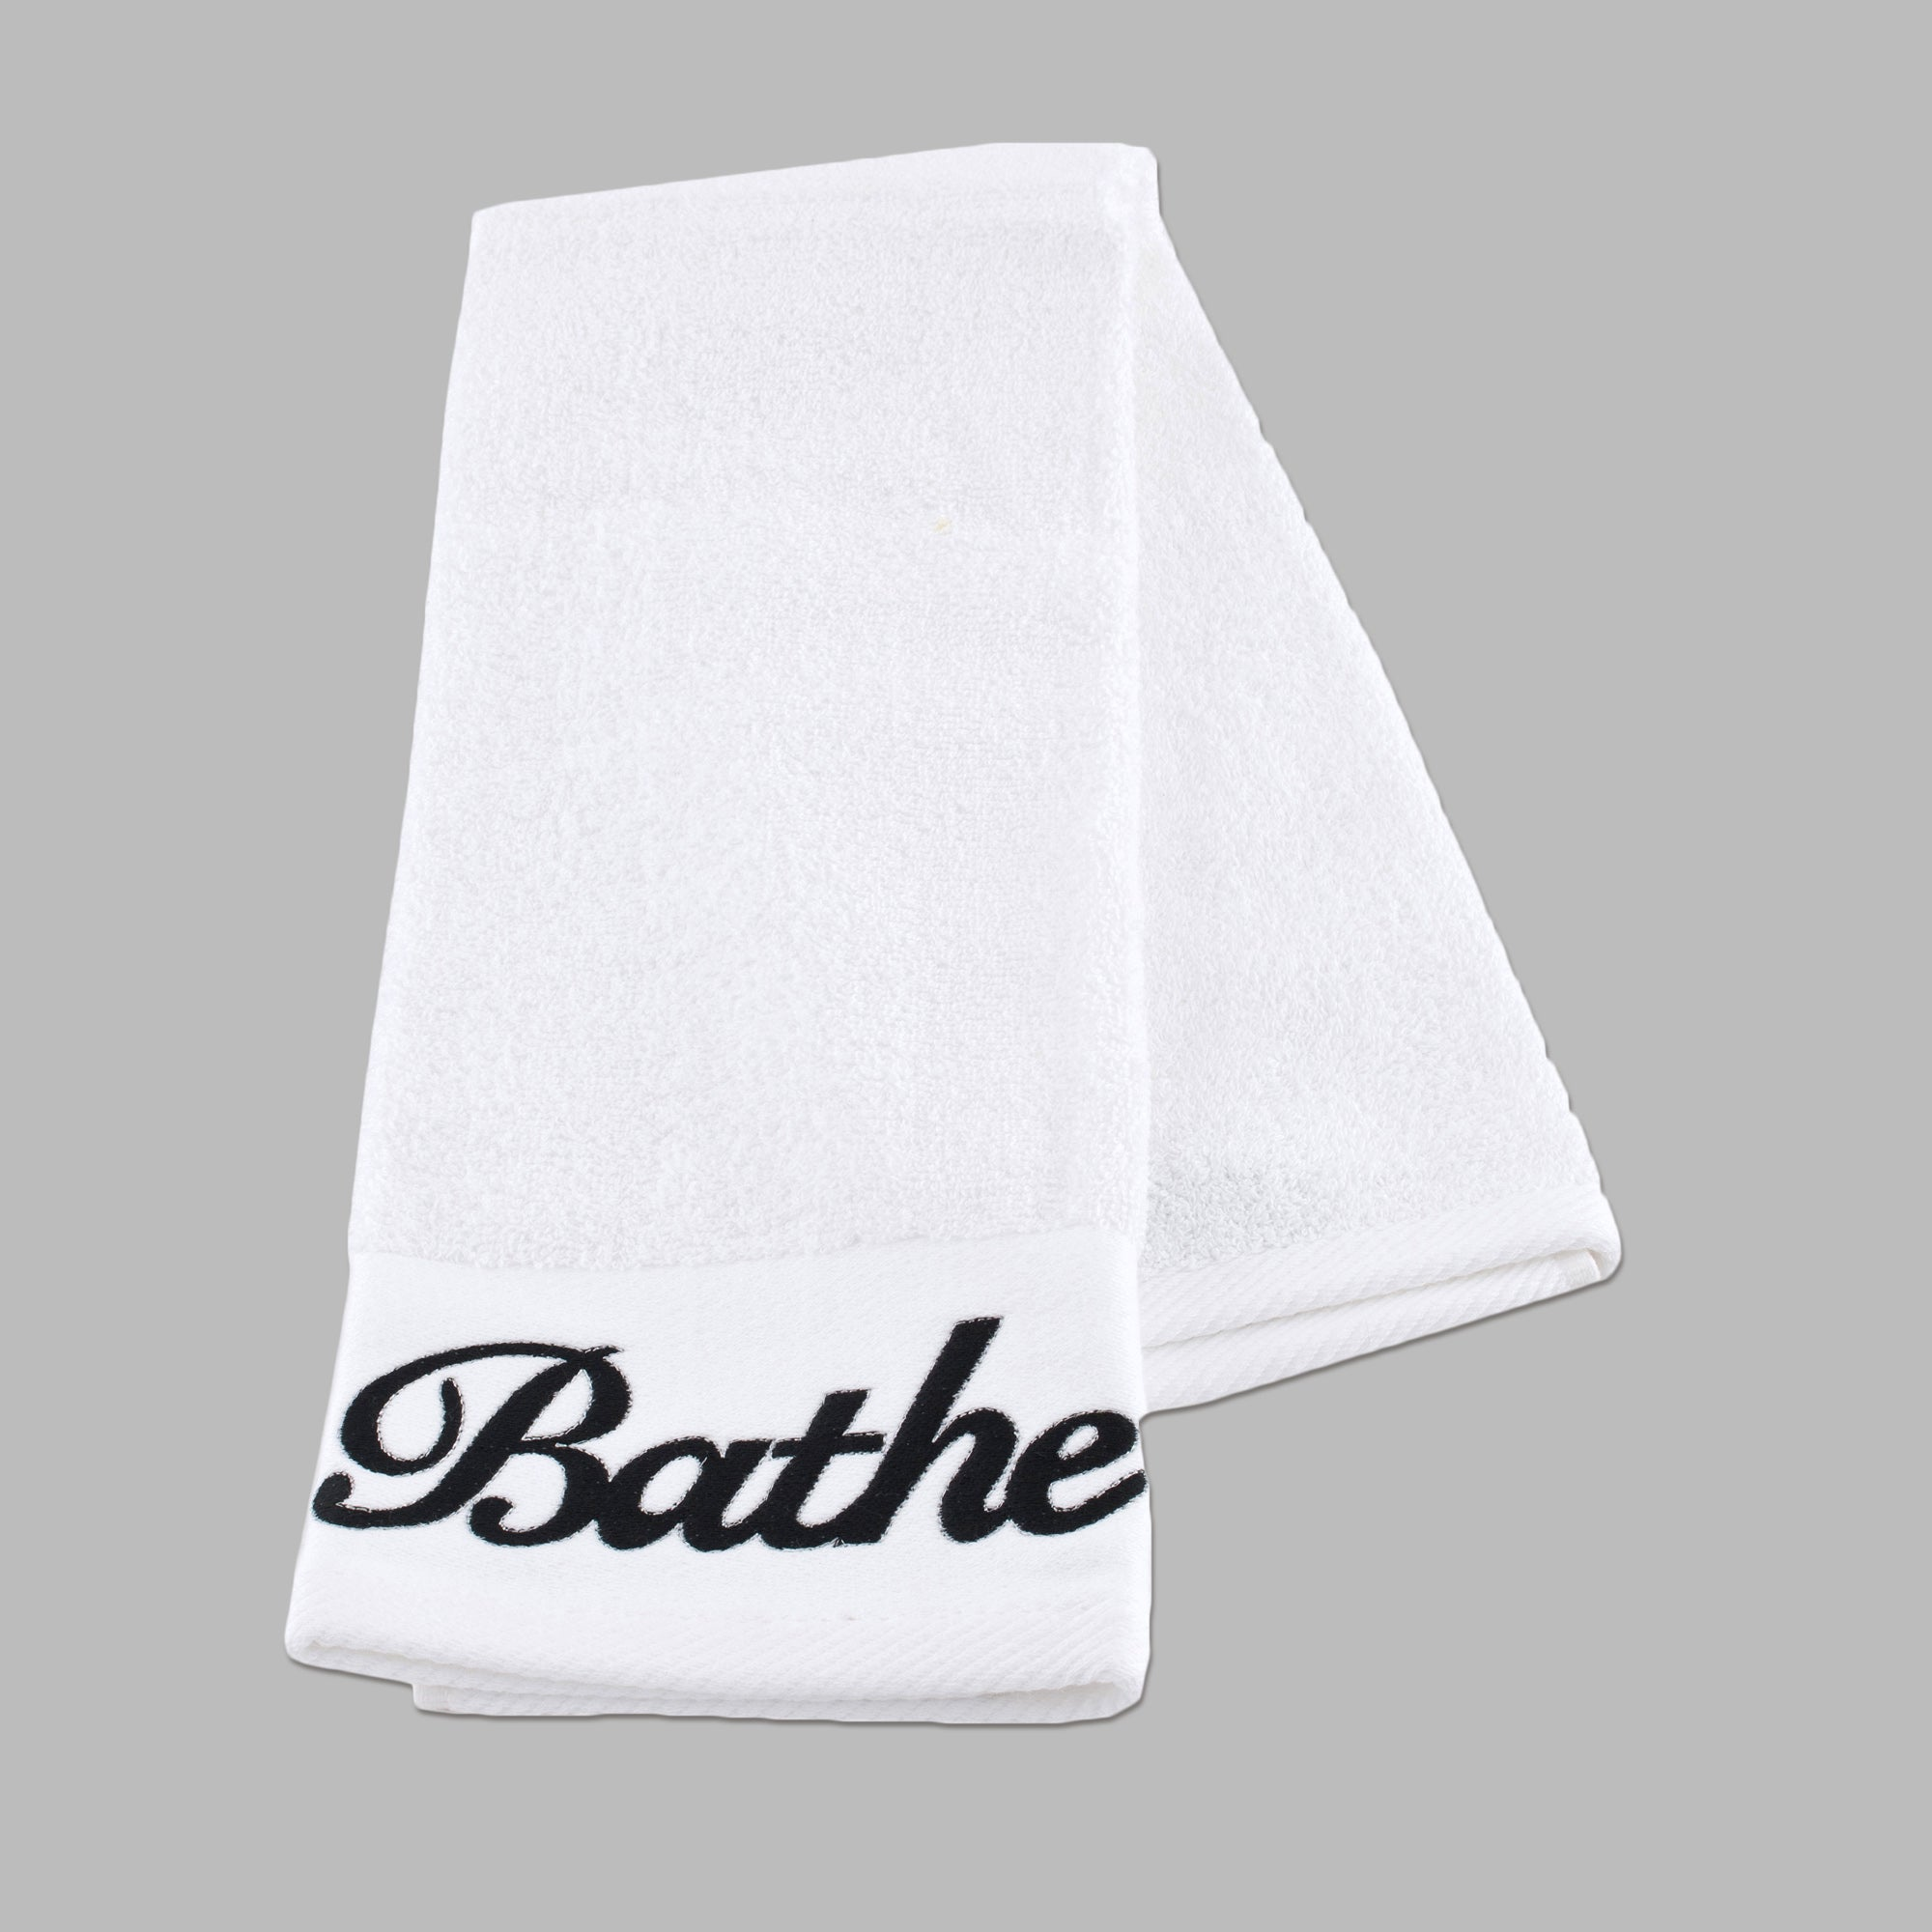 Jewel Bathe Hand Towel